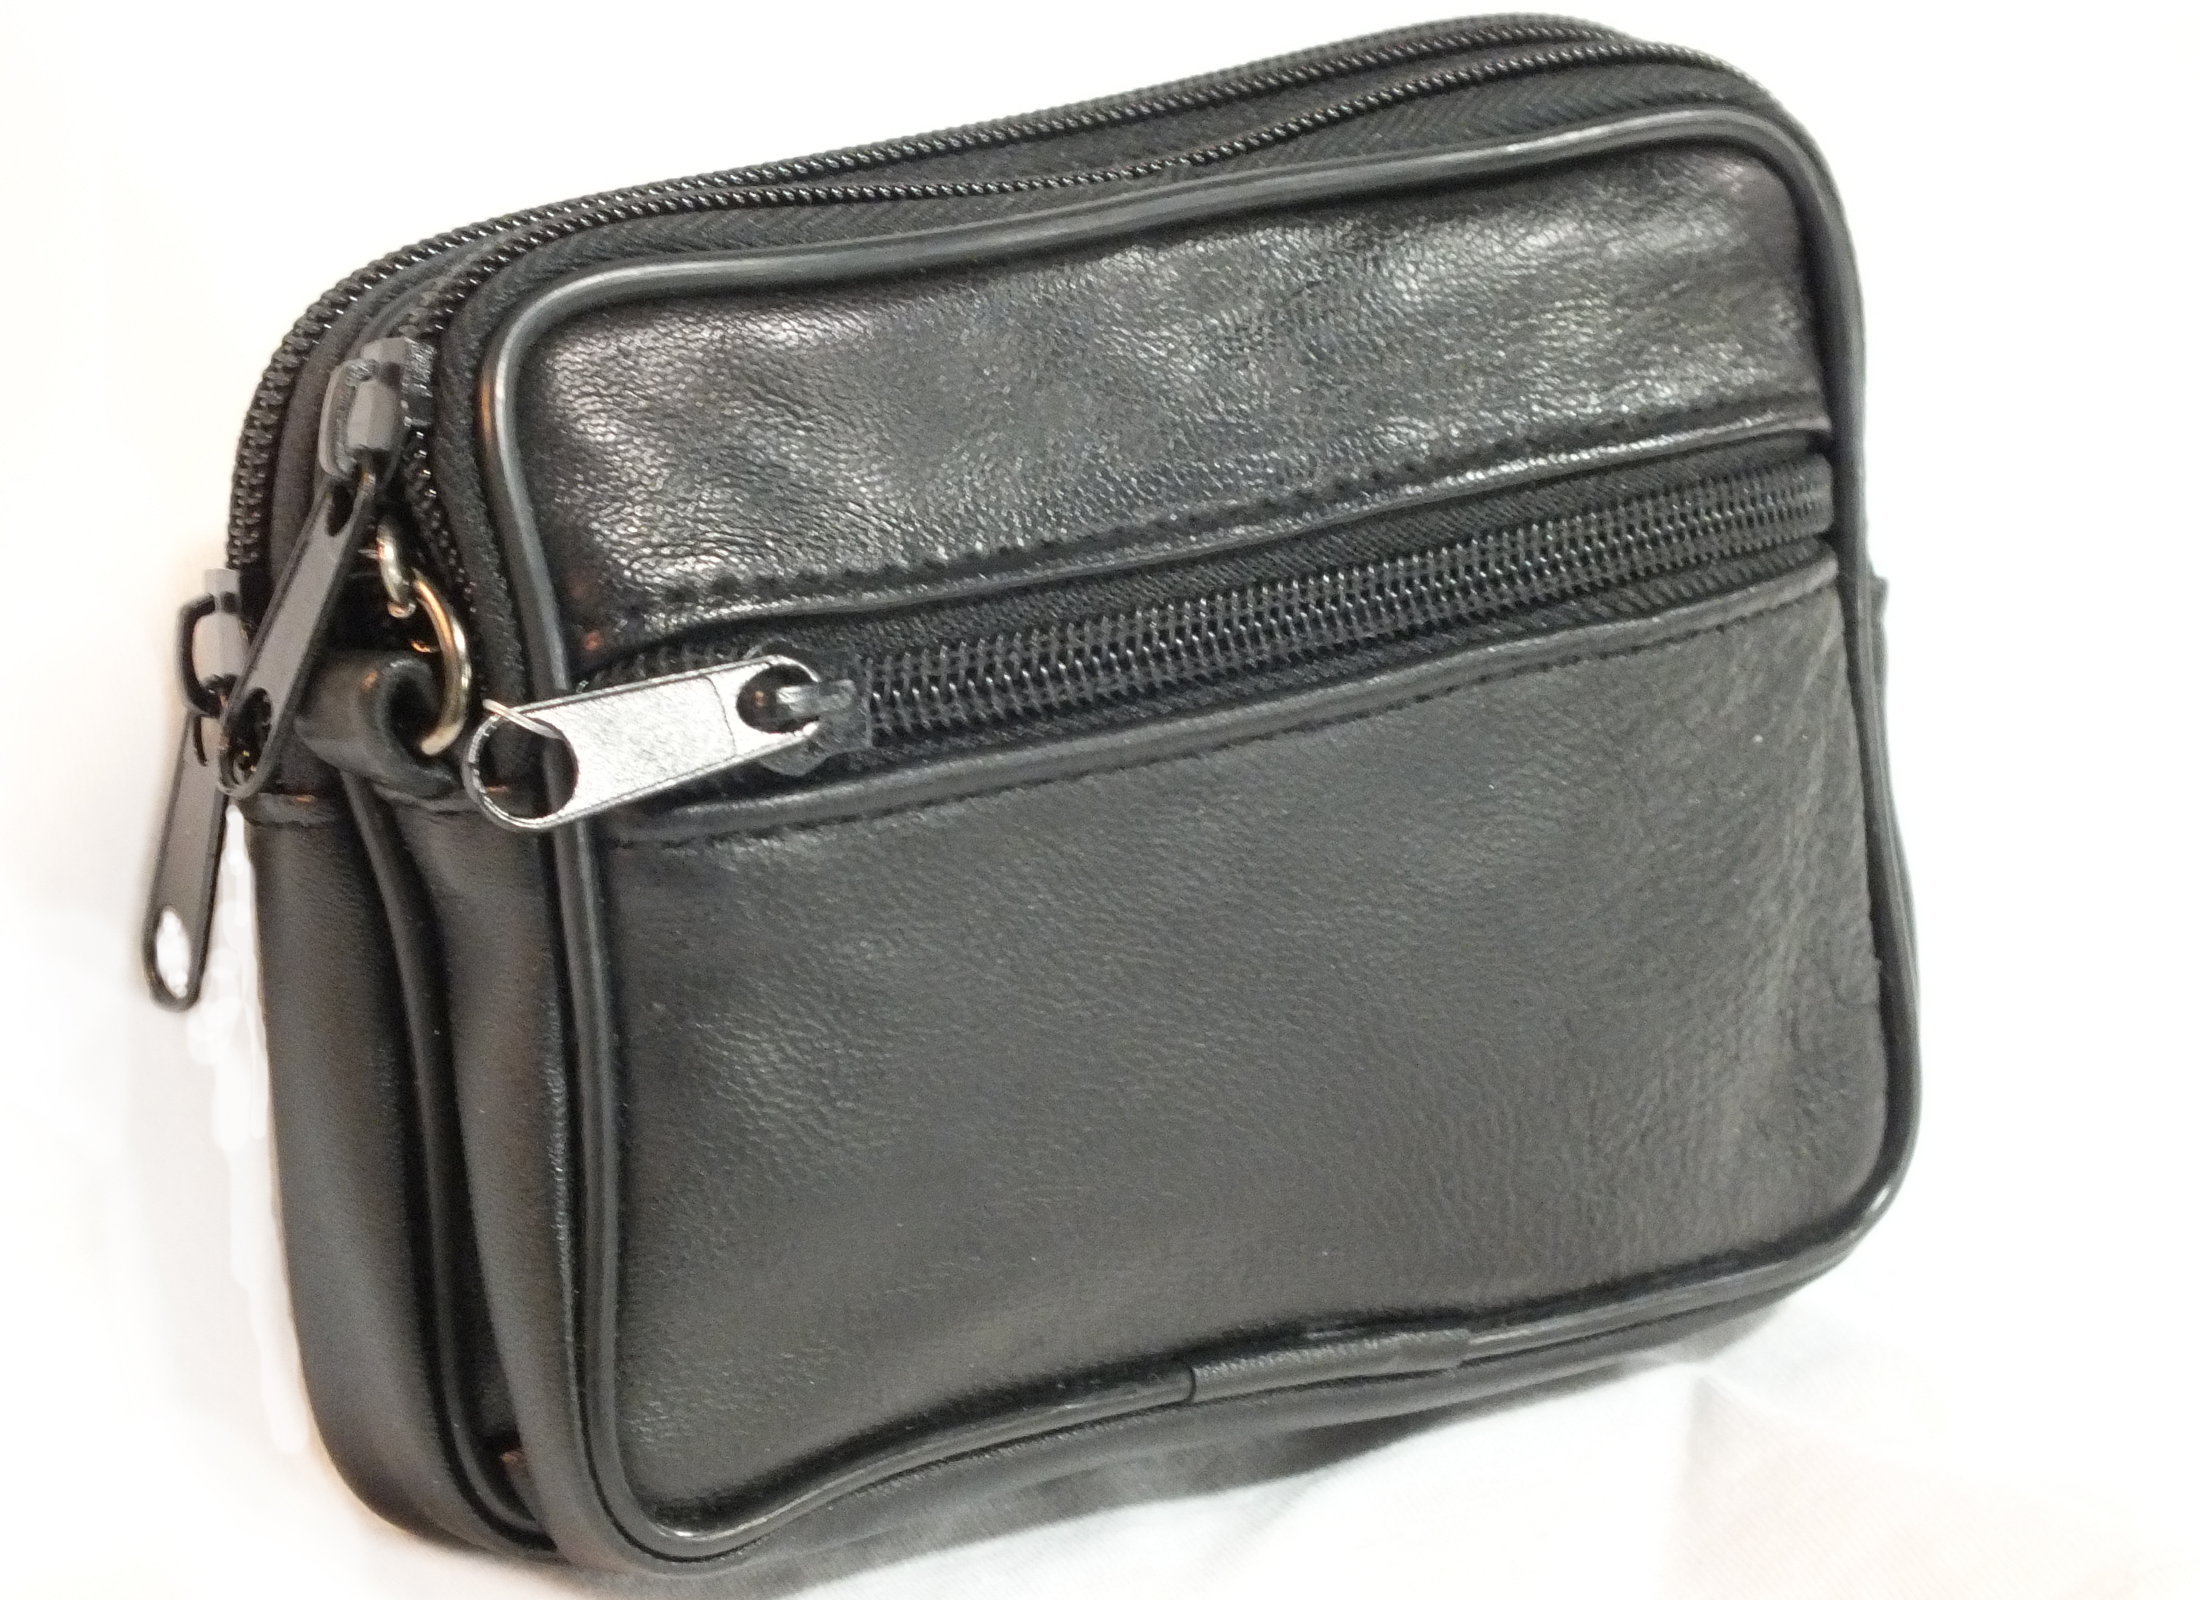 Square belt bag